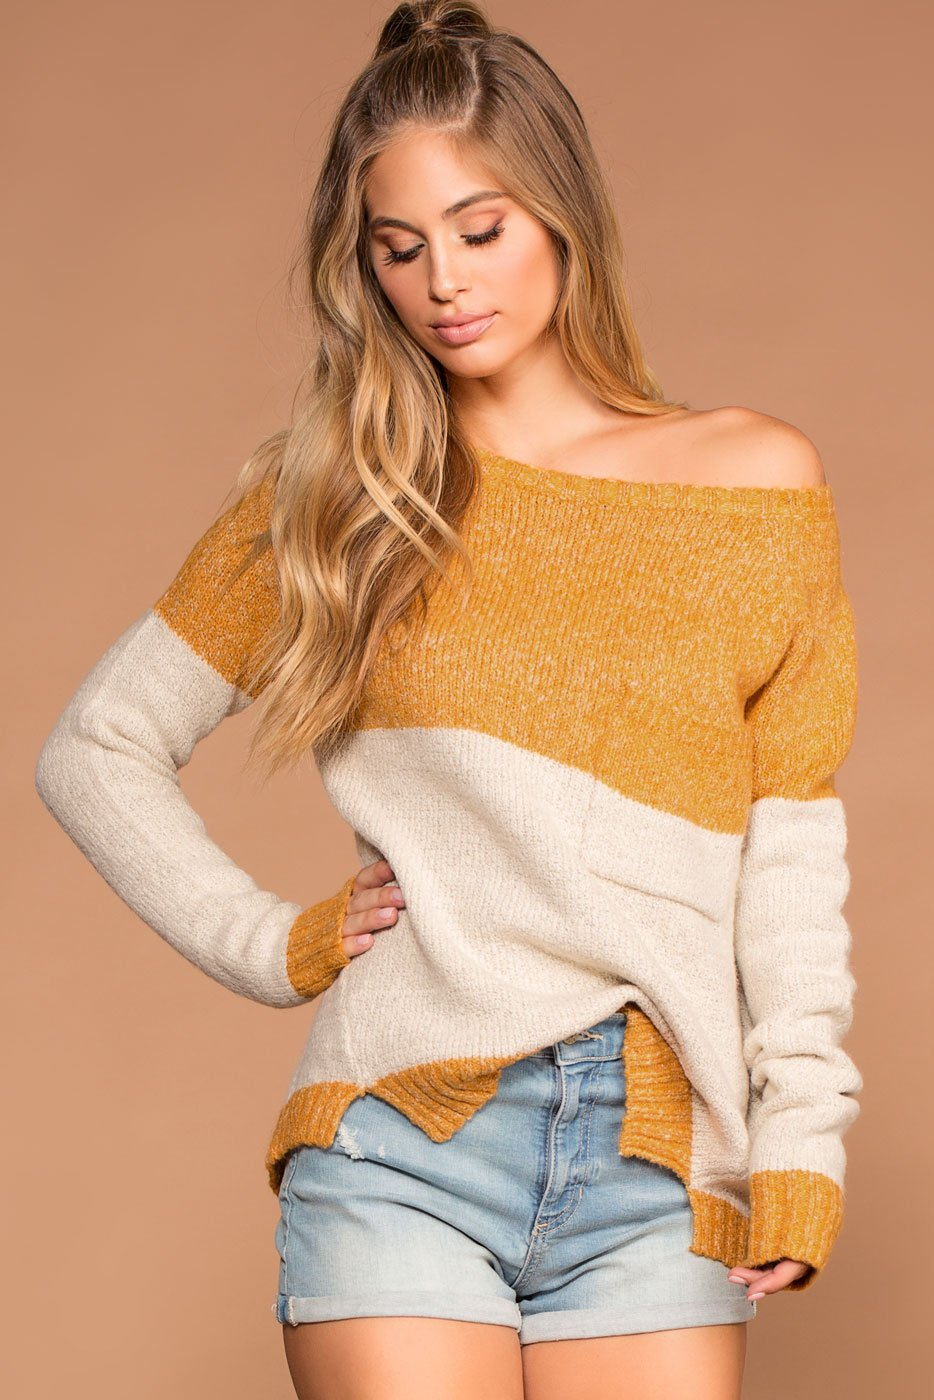 Sweaters - Cuddle Up Oversize Knit Sweater - Mustard And Ivory